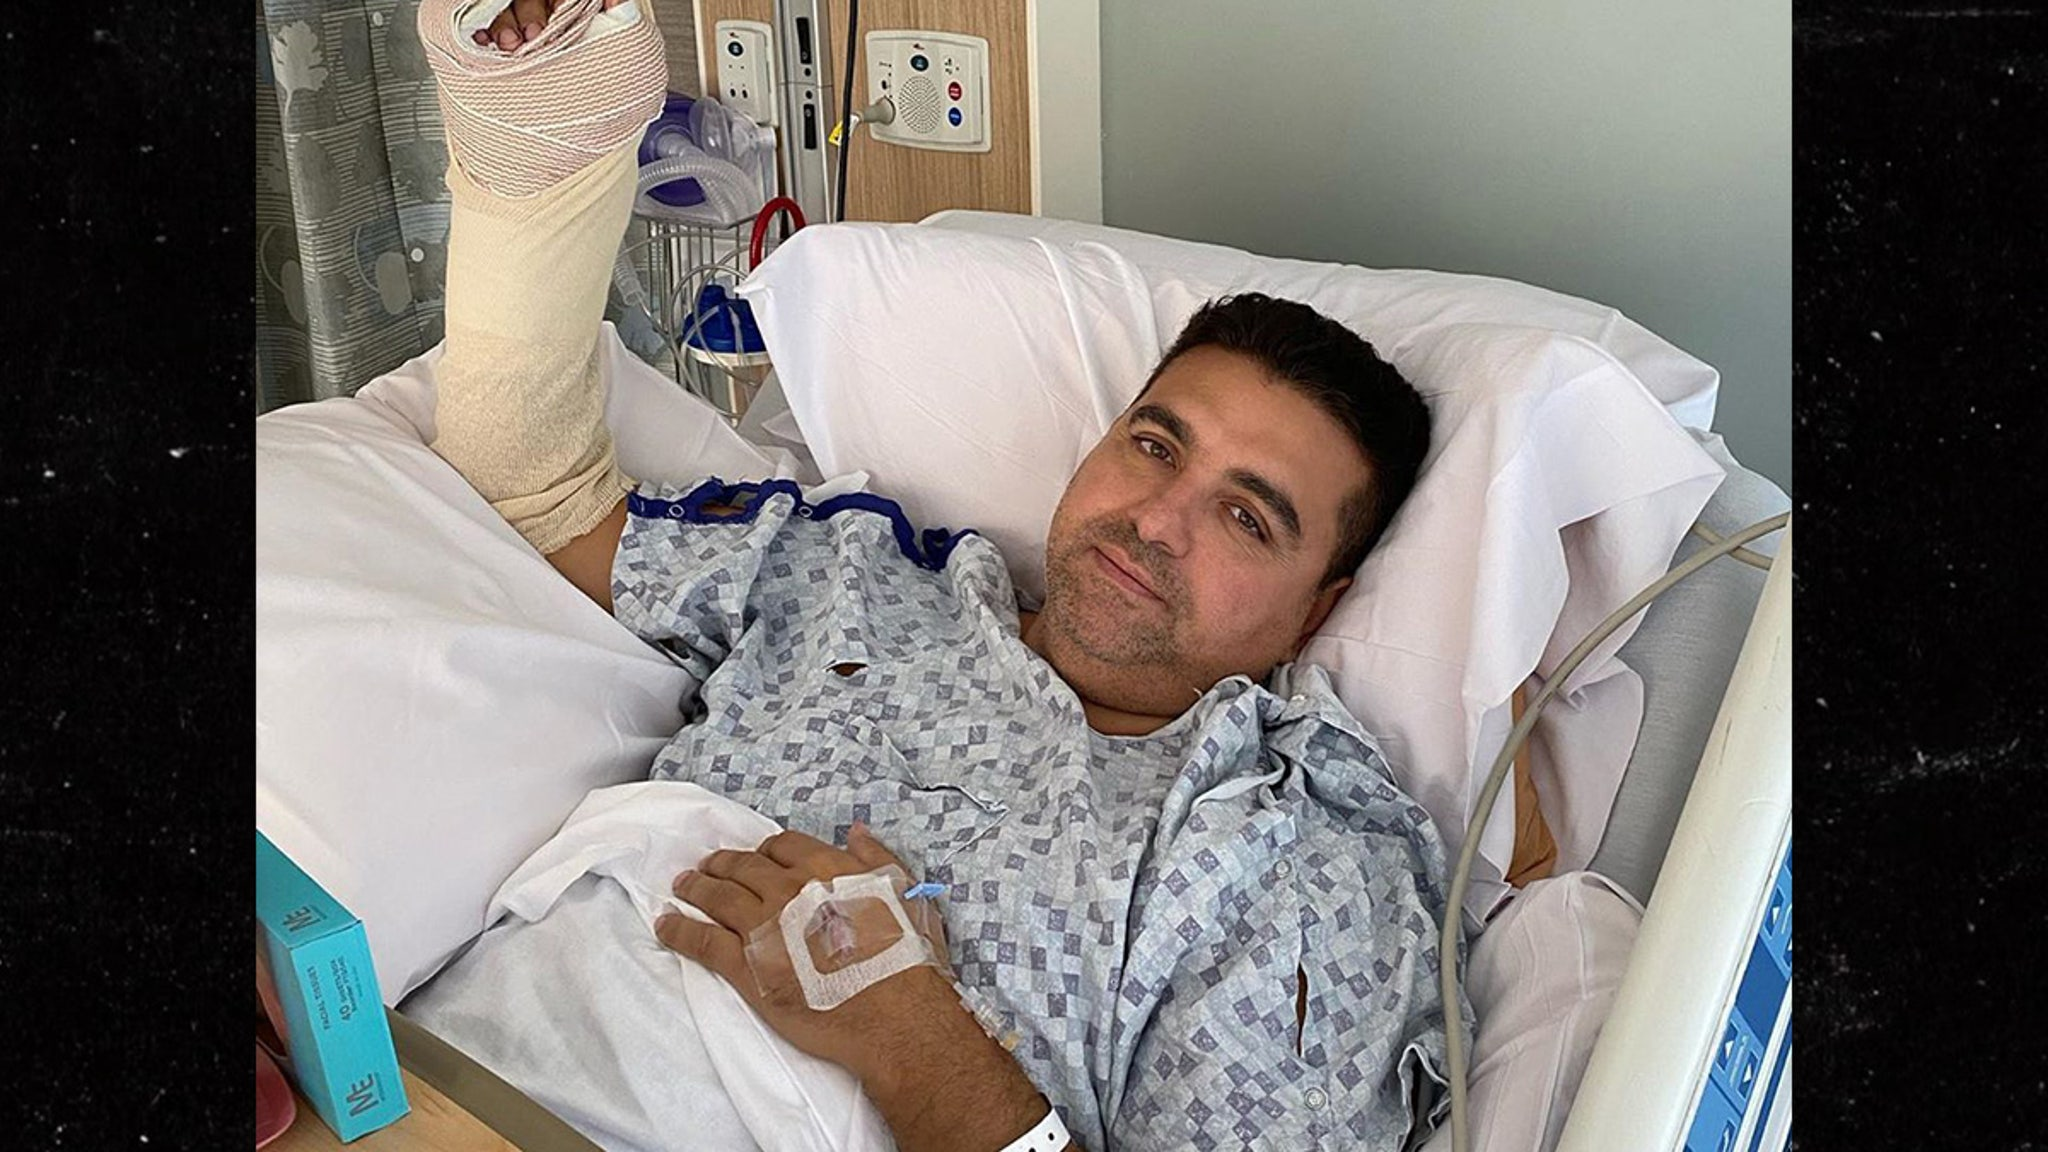 'Cake Boss' Star Buddy Valastro Impales Hand in Horrific Bowling Accident